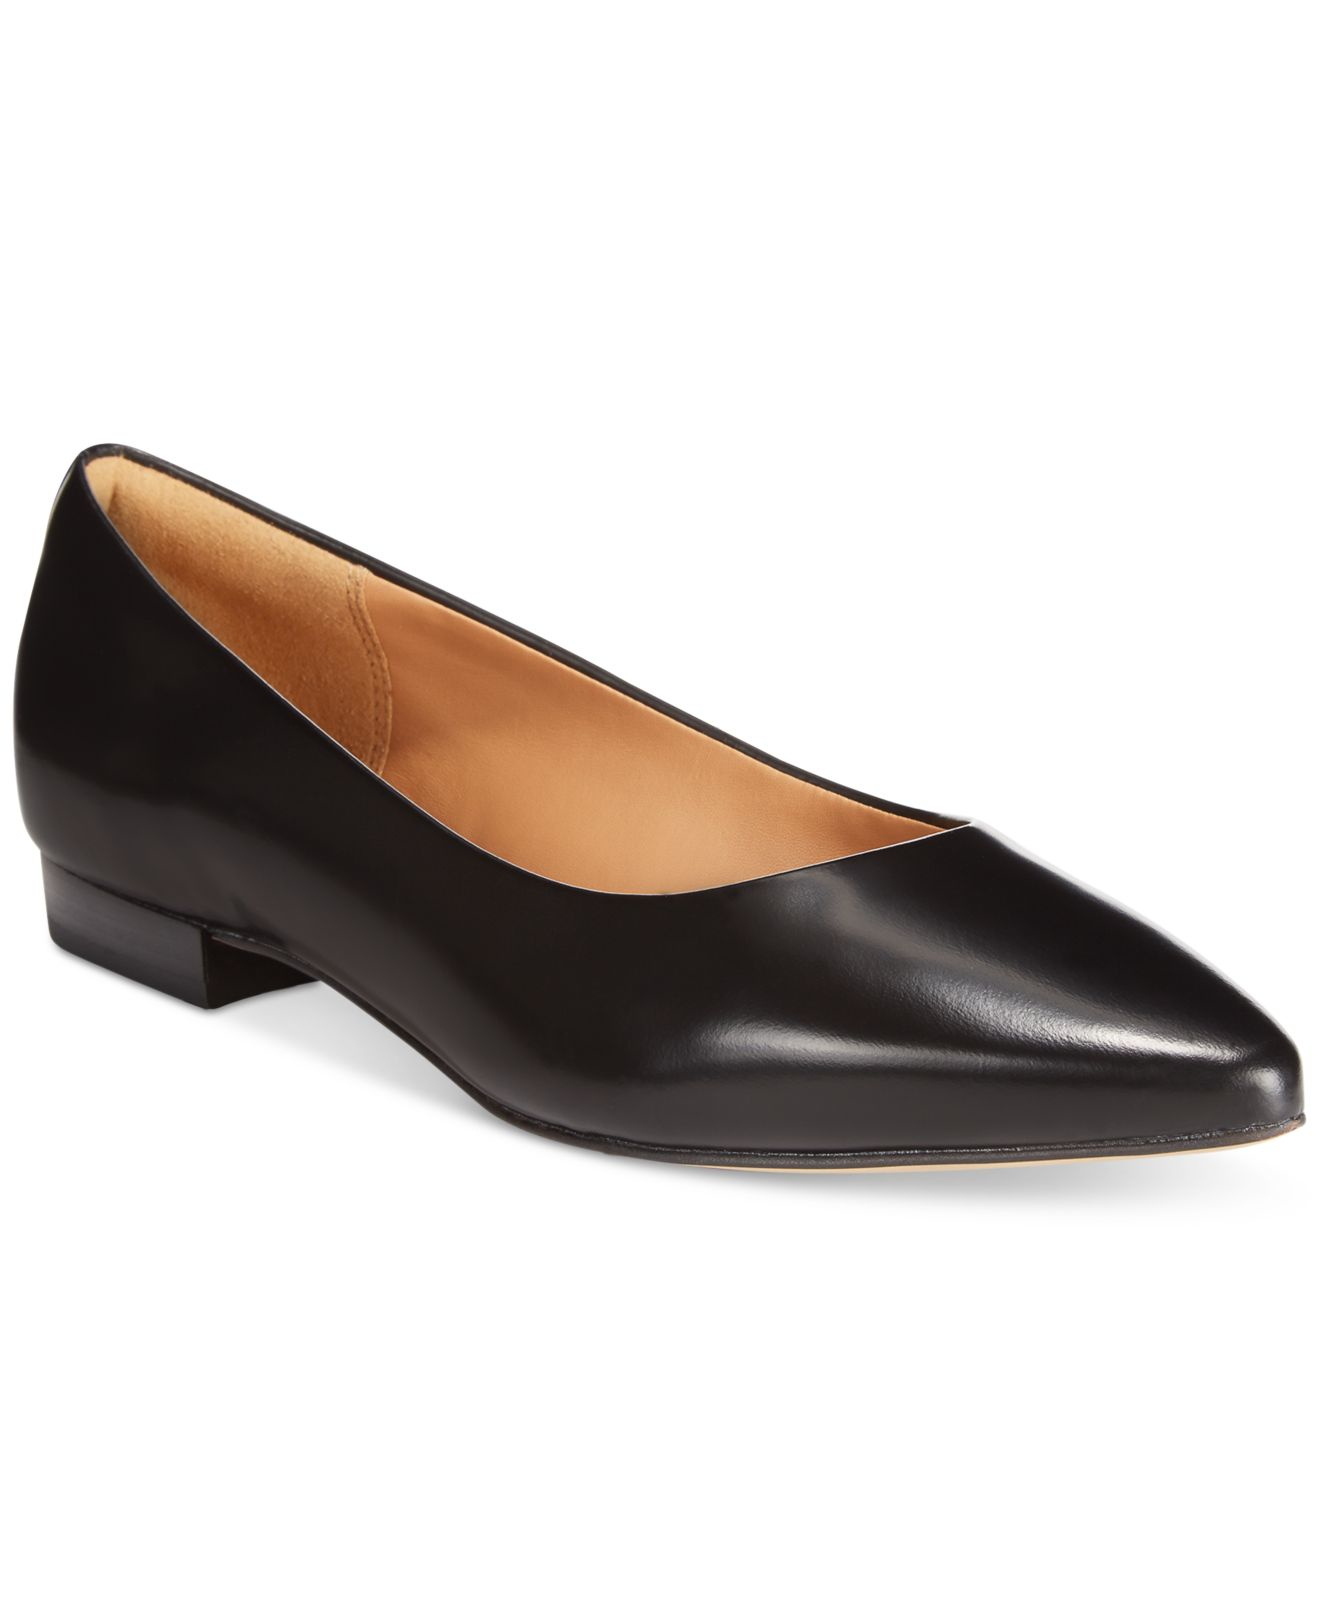 96a43c1f248f9 Lyst - Clarks Artisan Women s Corabeth Abby Pointed Toe Flats in Black